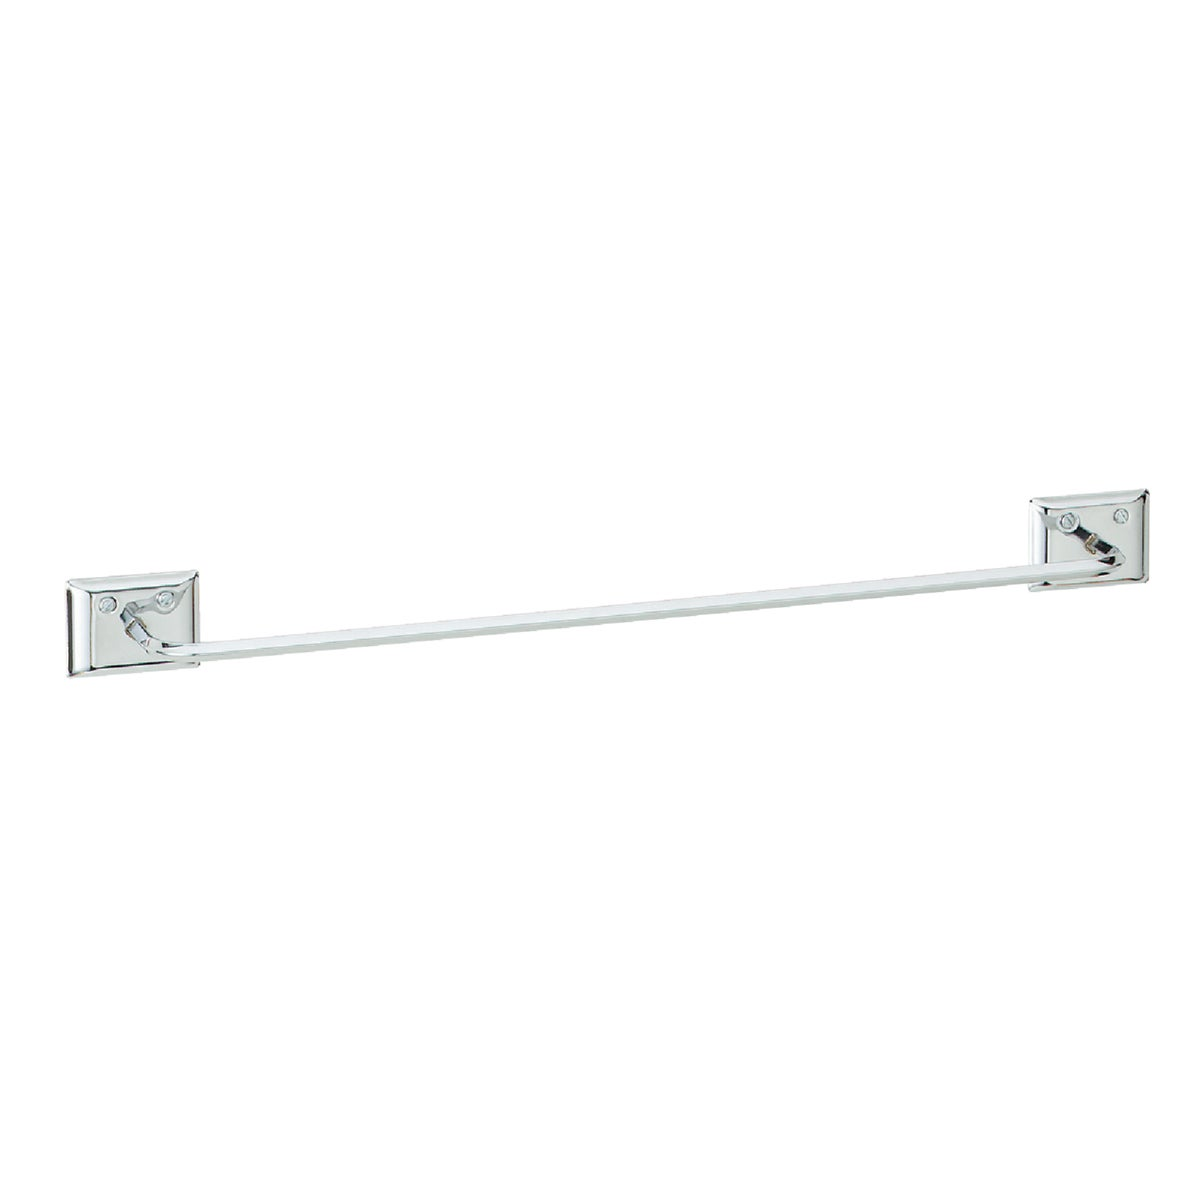 "18"" CHROME TOWEL BAR - 38110 by Decko Bath"